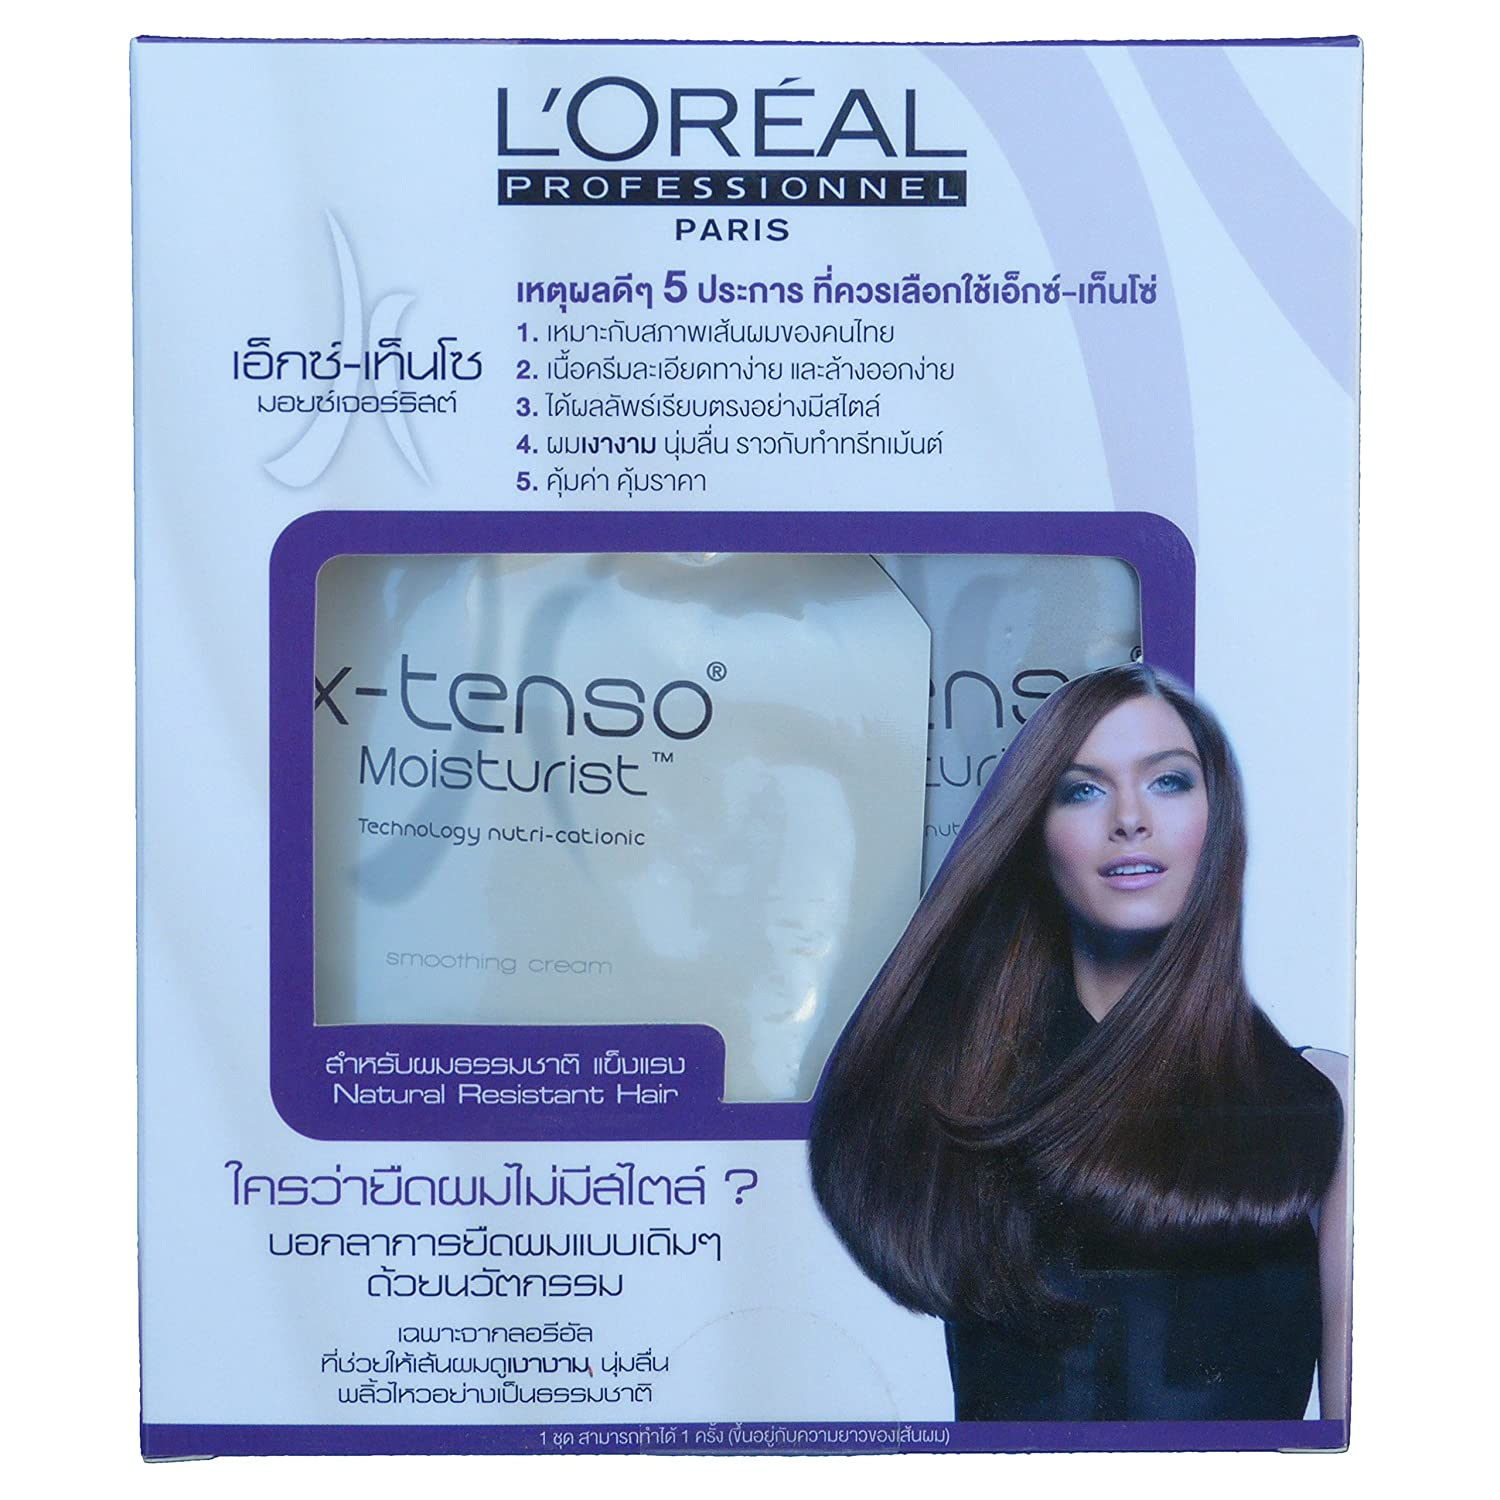 L'oreal X-tenso Straightener Cream Straightening Hai for Natural Resistant Hair KA-SE-BI0031